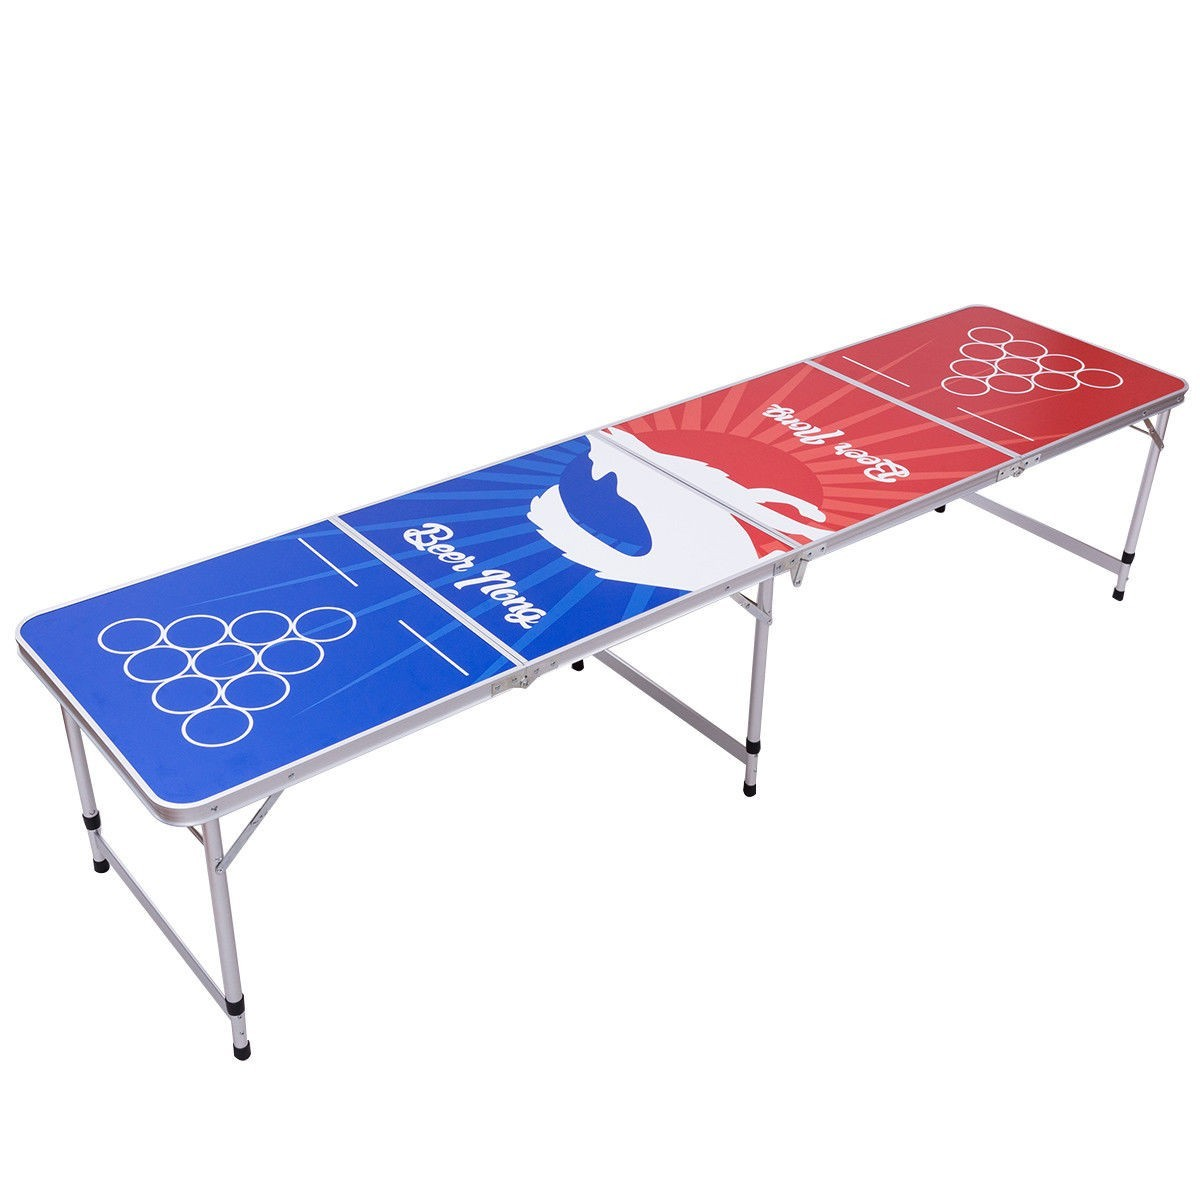 8 ft Indoor Outdoor Portable Folding Beer Pong Camping Table by